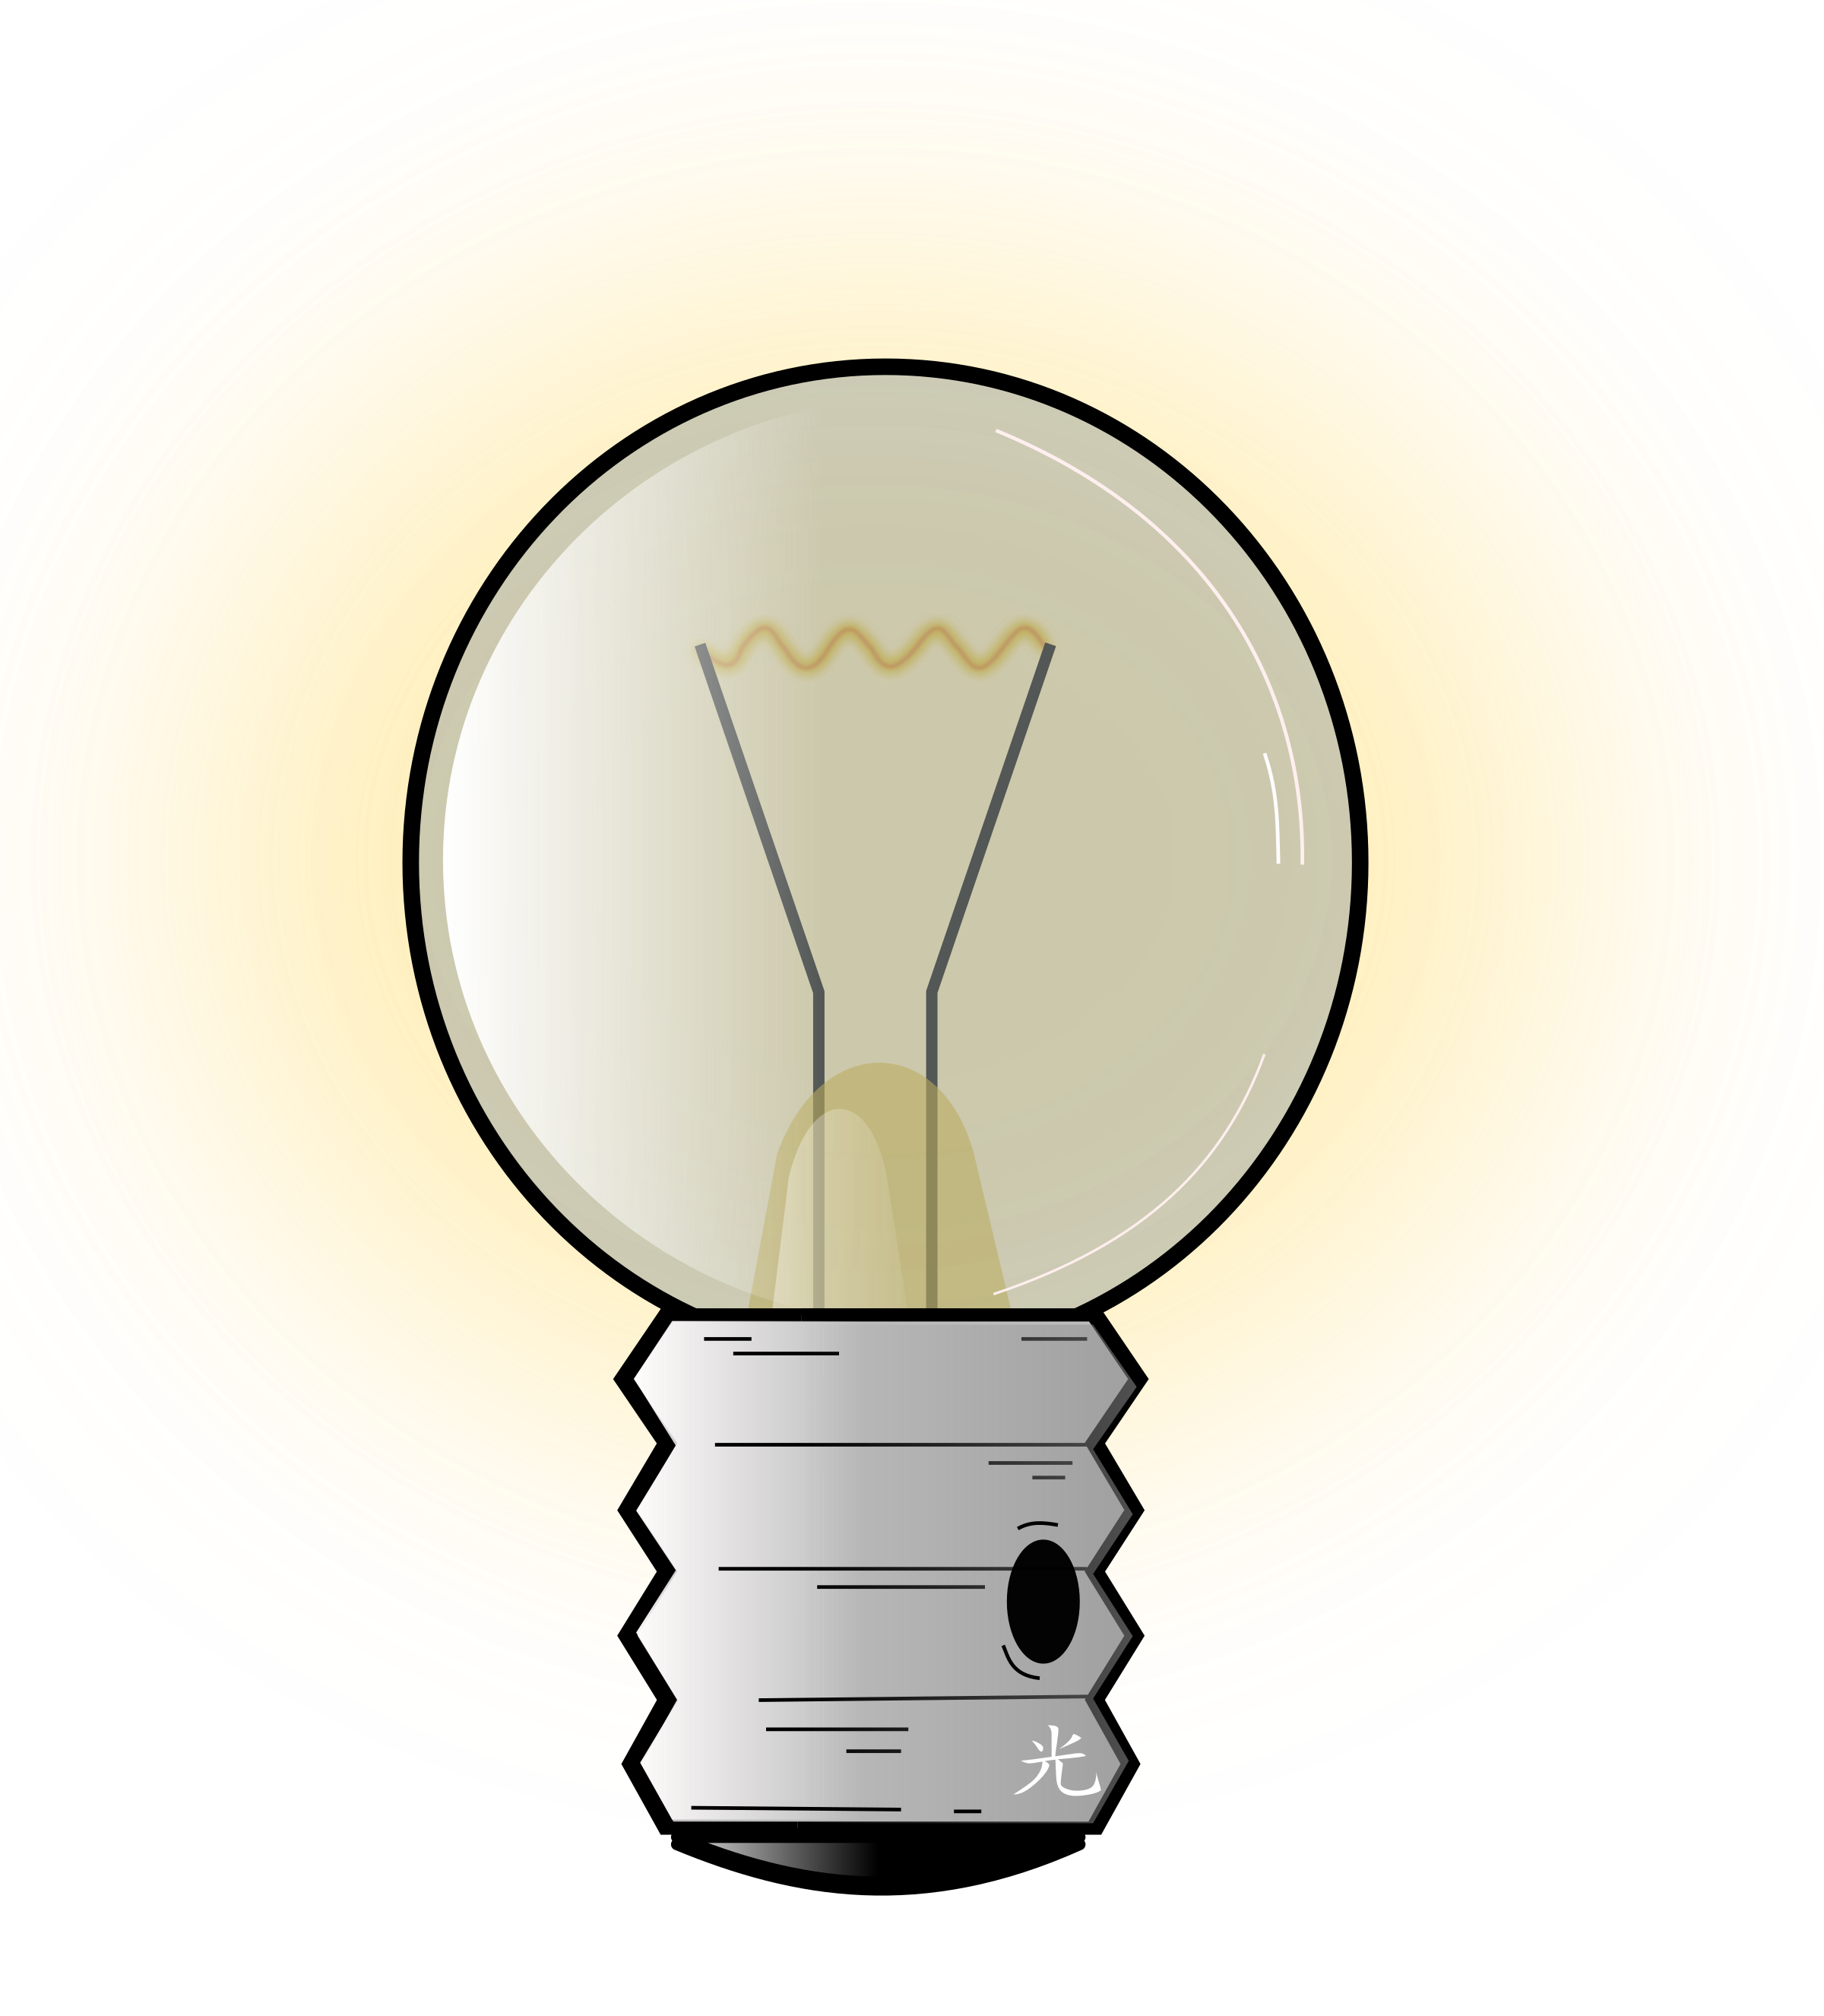 Lightbulb by Romanov